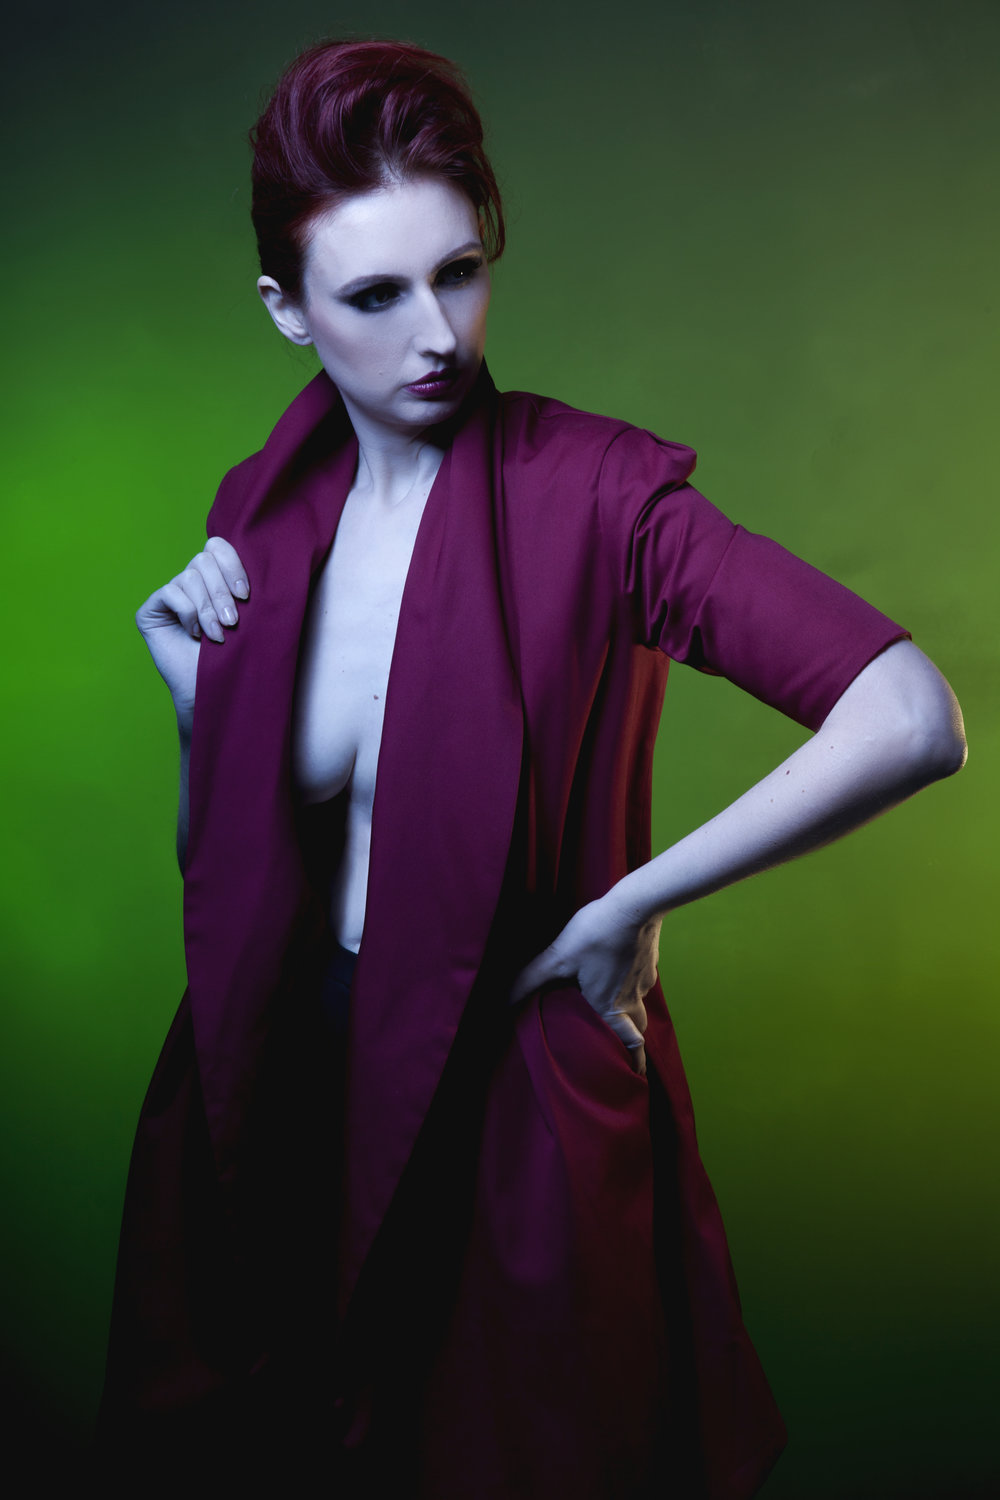 zaramia-ava-zaramiaava-leeds-fashion-designer-ethical-sustainable-red-versatile-drape-wrap-mai-cowl-jacket-dress-styling-studio-womenswear-models-photoshoot-vibrant-colour-green-2